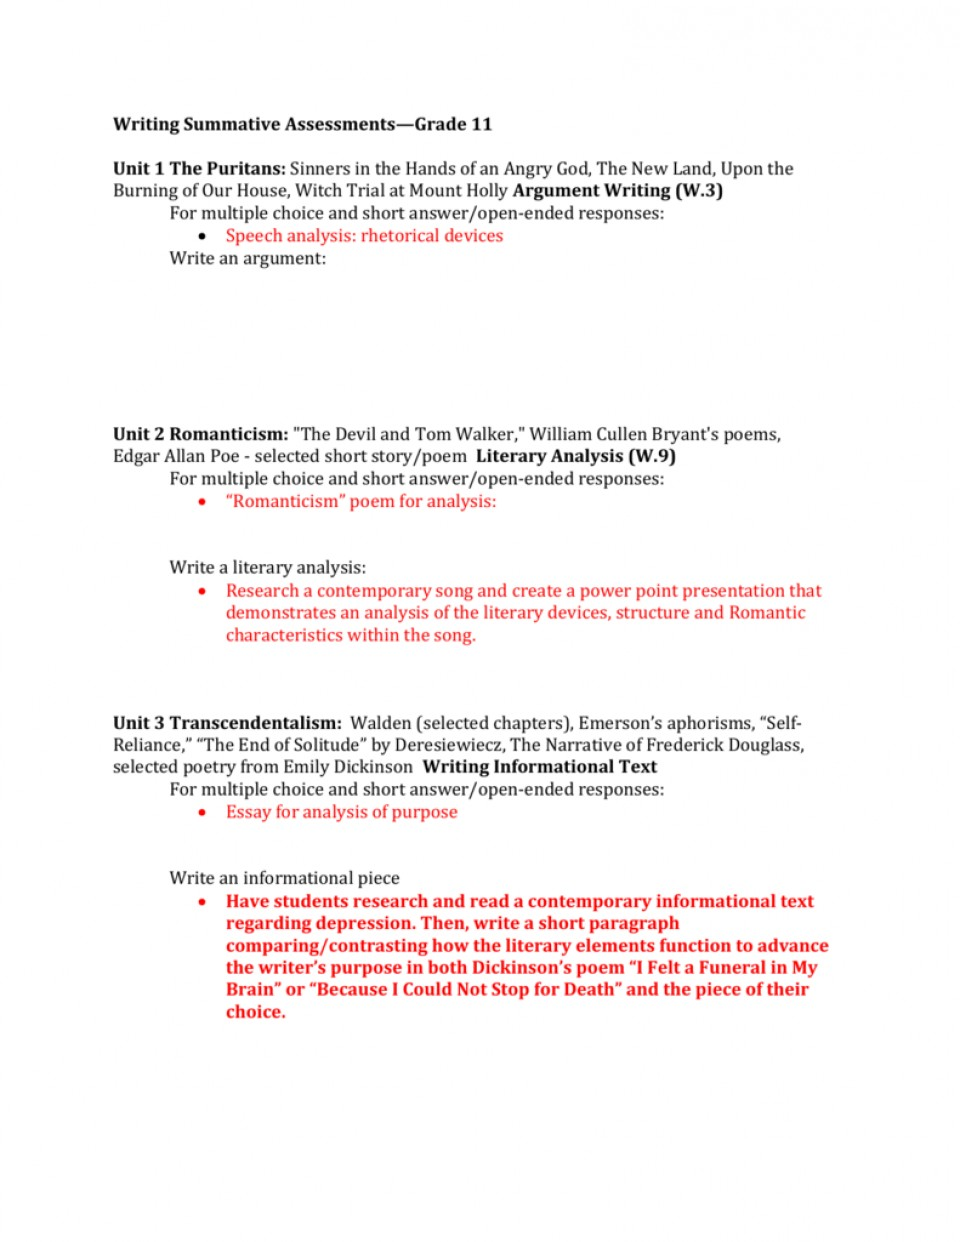 005 Essay On Because I Could Not Stop For Death Example 009038928 1 Top Conclusion Analytical Sample 960